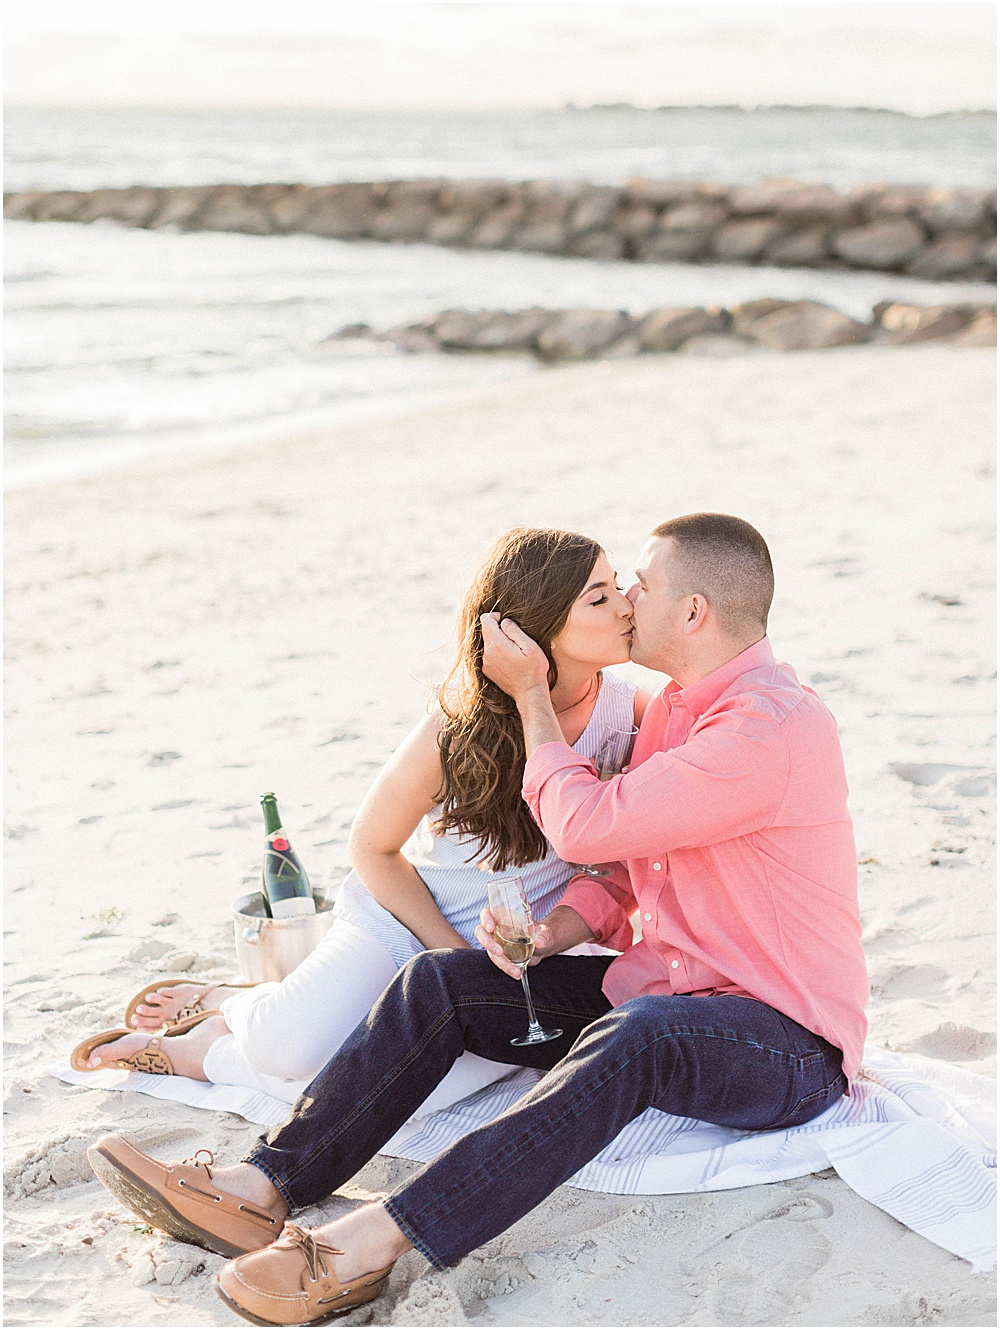 chartroom_old_silver_beach_seacrest_sunset_spring_engagement_session_boston_wedding_photographer_meredith_jane_photography_photo_0243.jpg